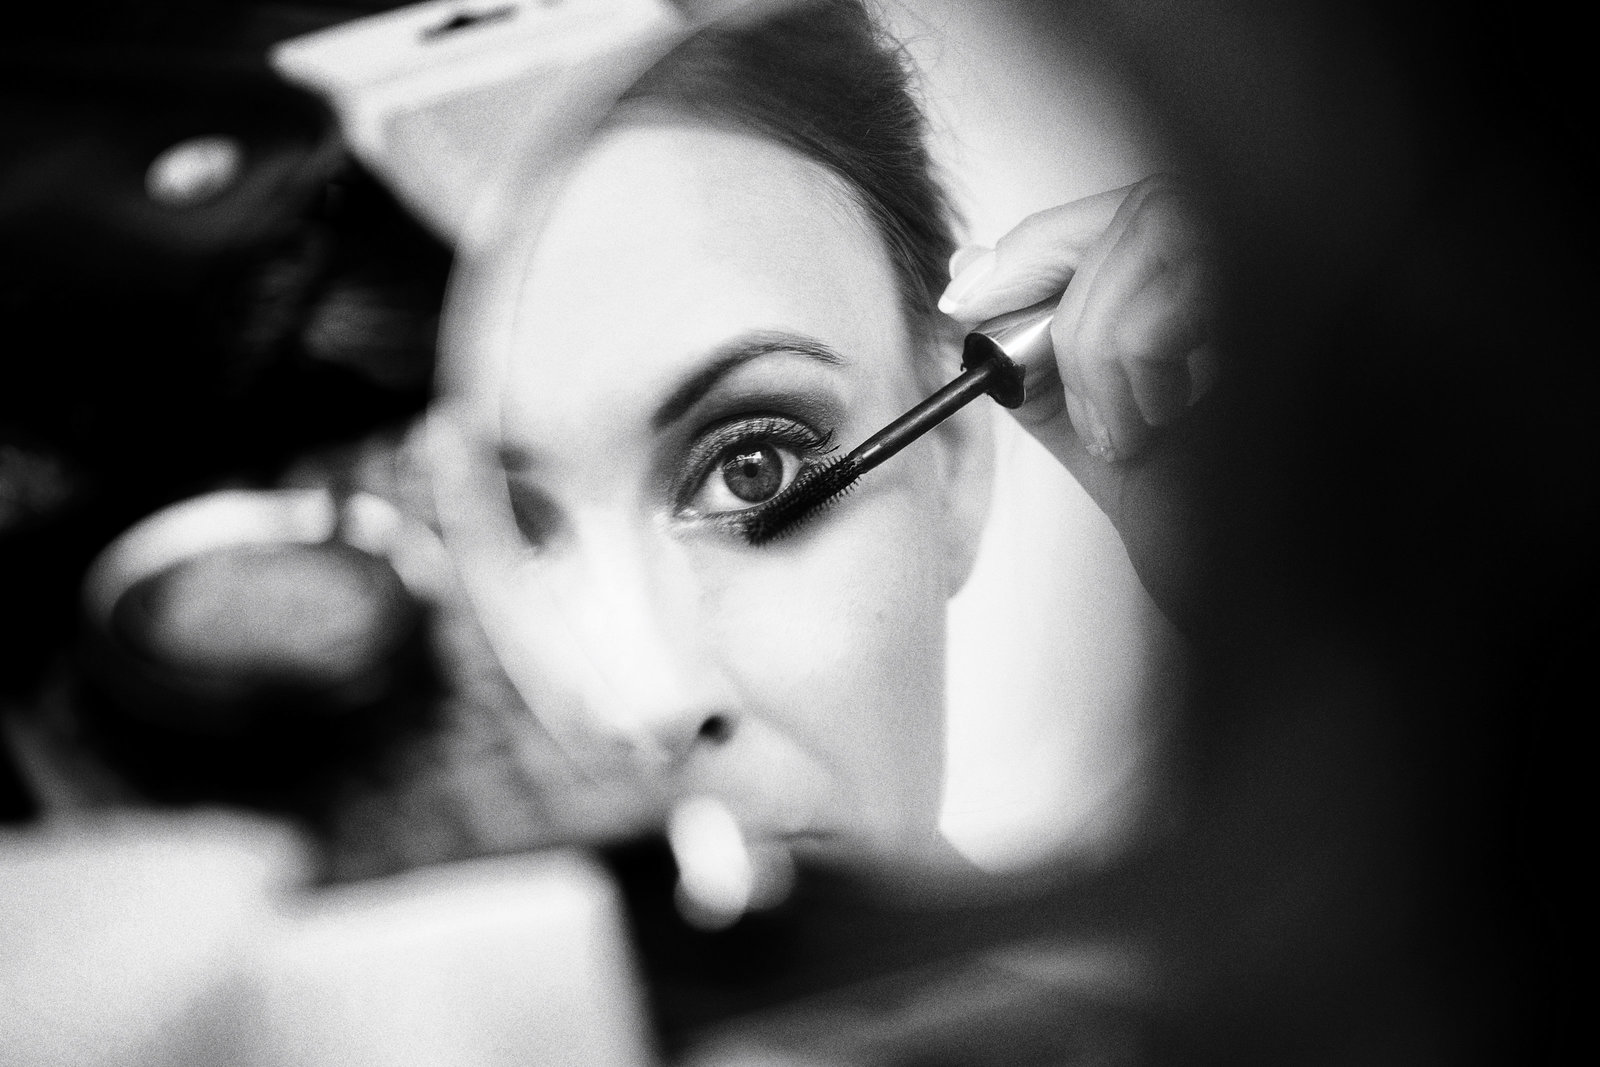 A favourite wedding photo in black and white of a bride close up putting mascara on in the mirror. The photo is the reflection in the mirror taken at an amazing wide aperture of f1.2 on a 50mm lens